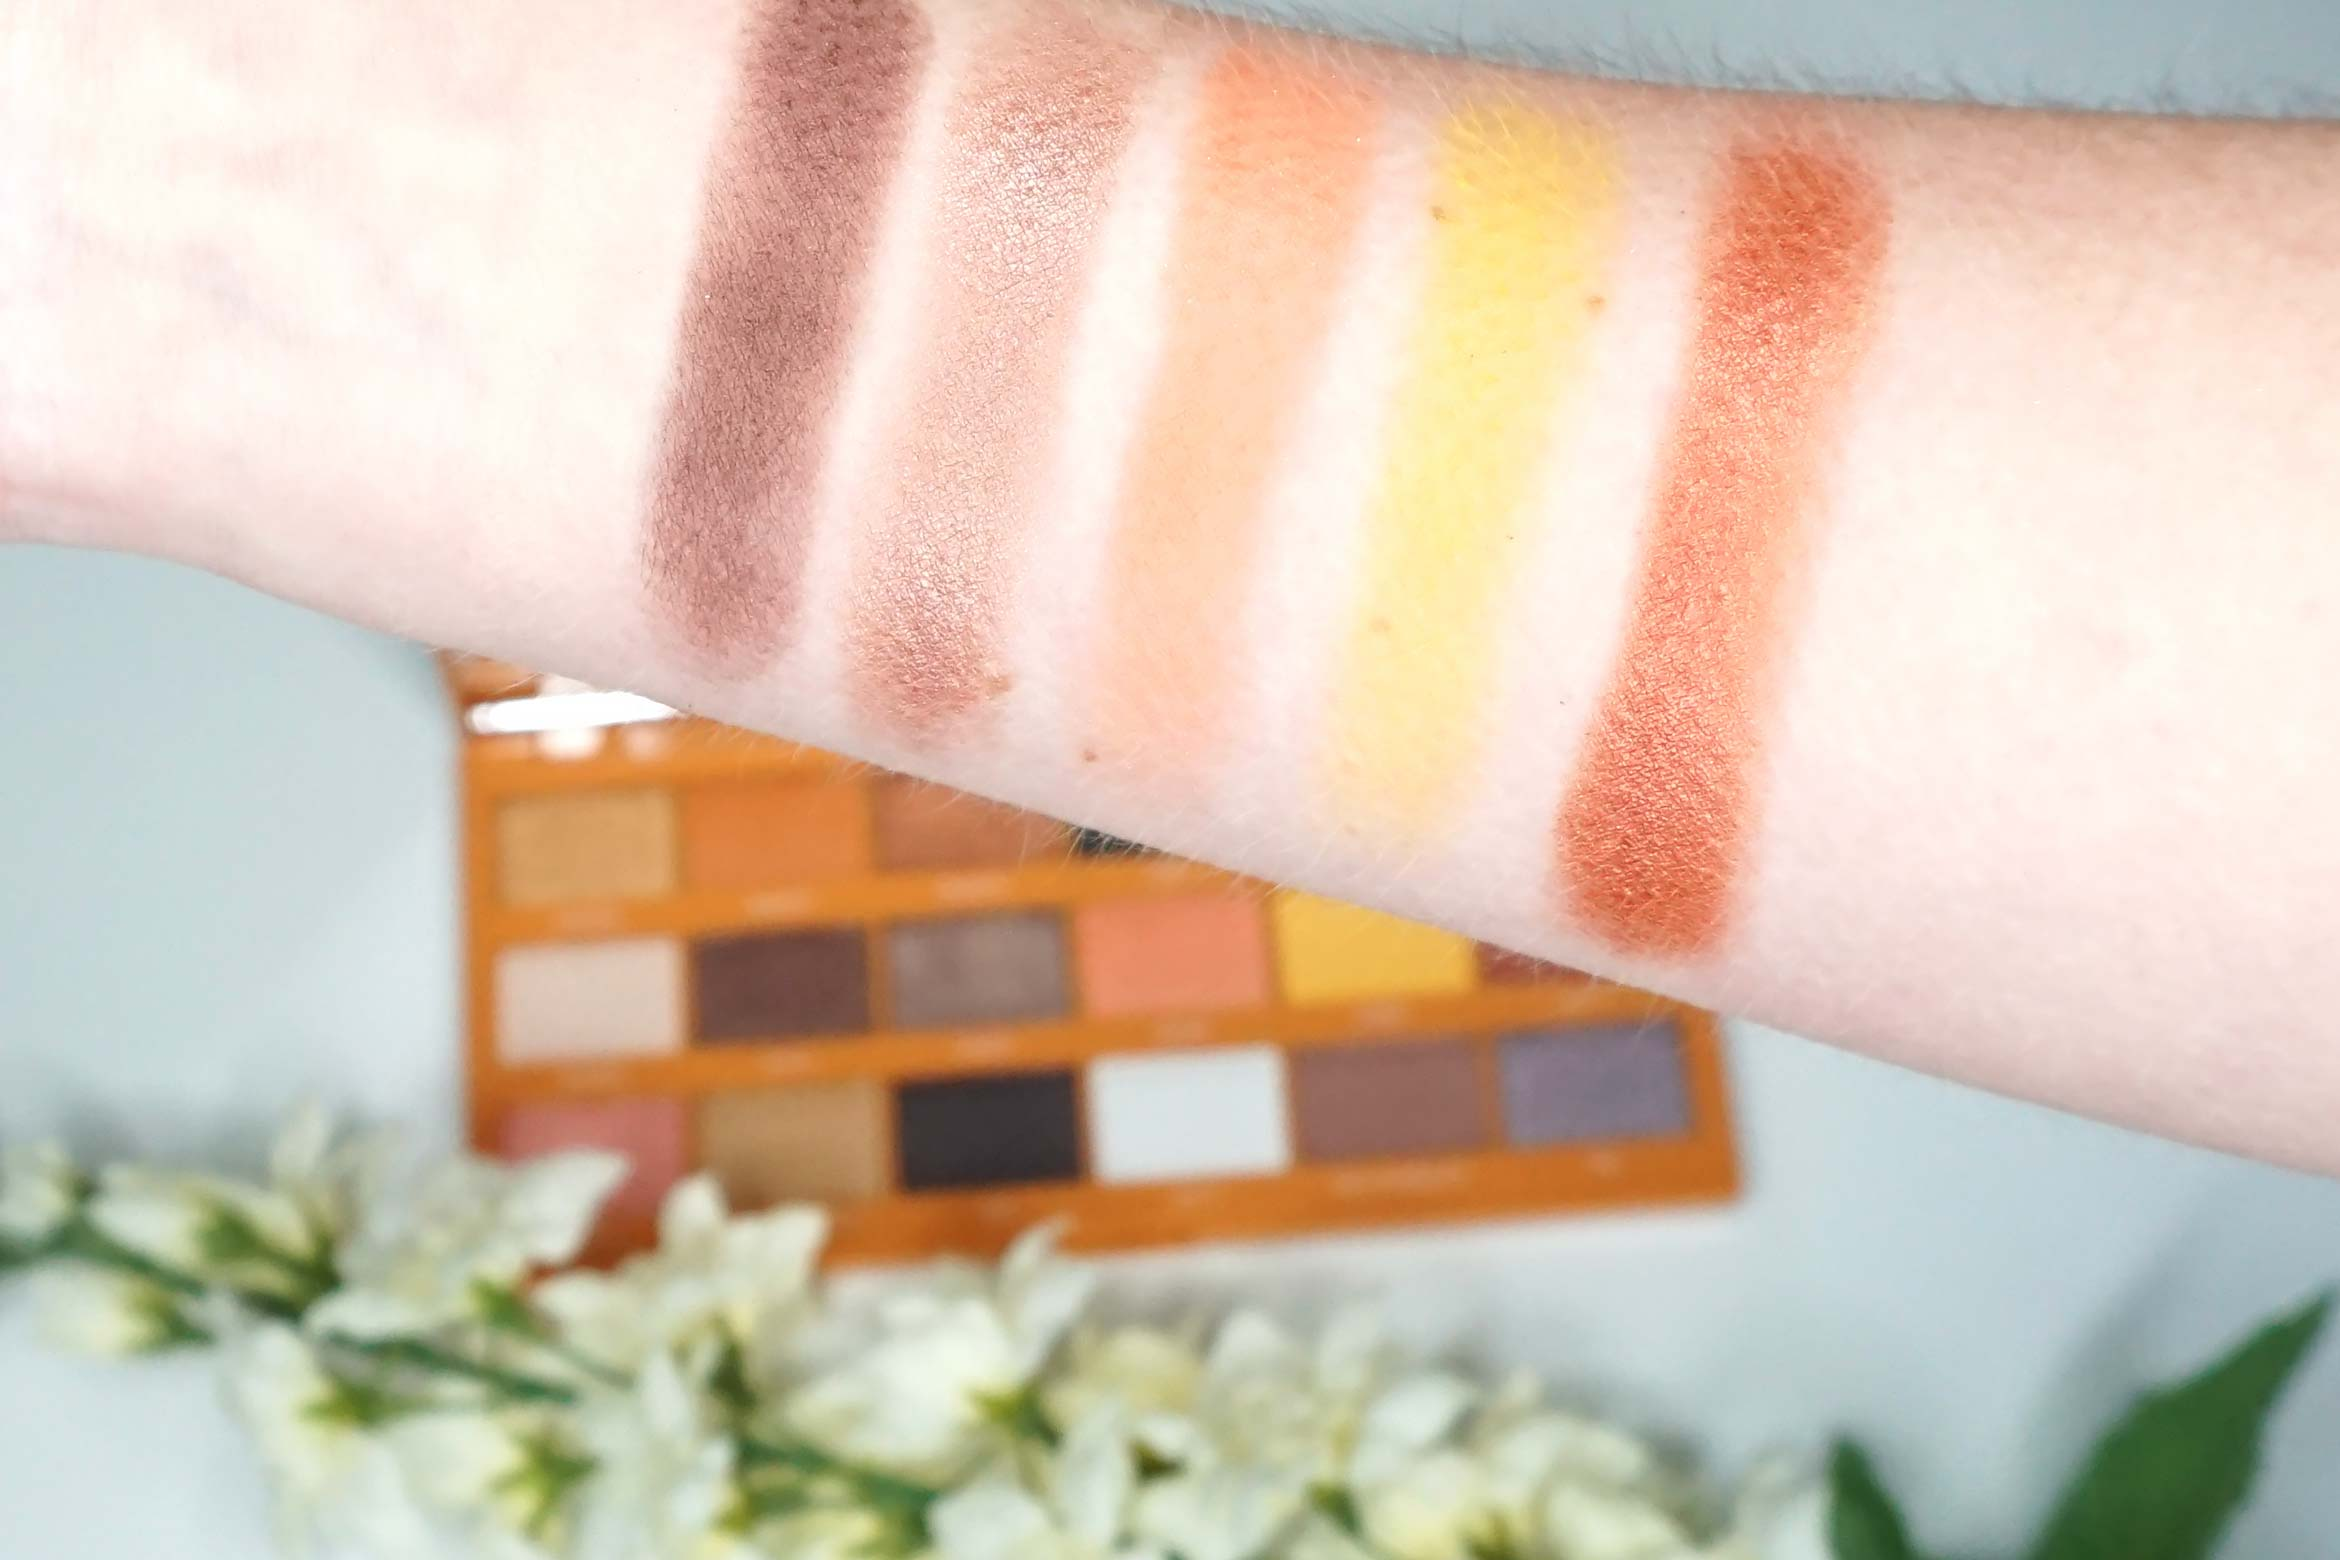 i-heart-revolution-peanut-butter-cup-review-swatch-1